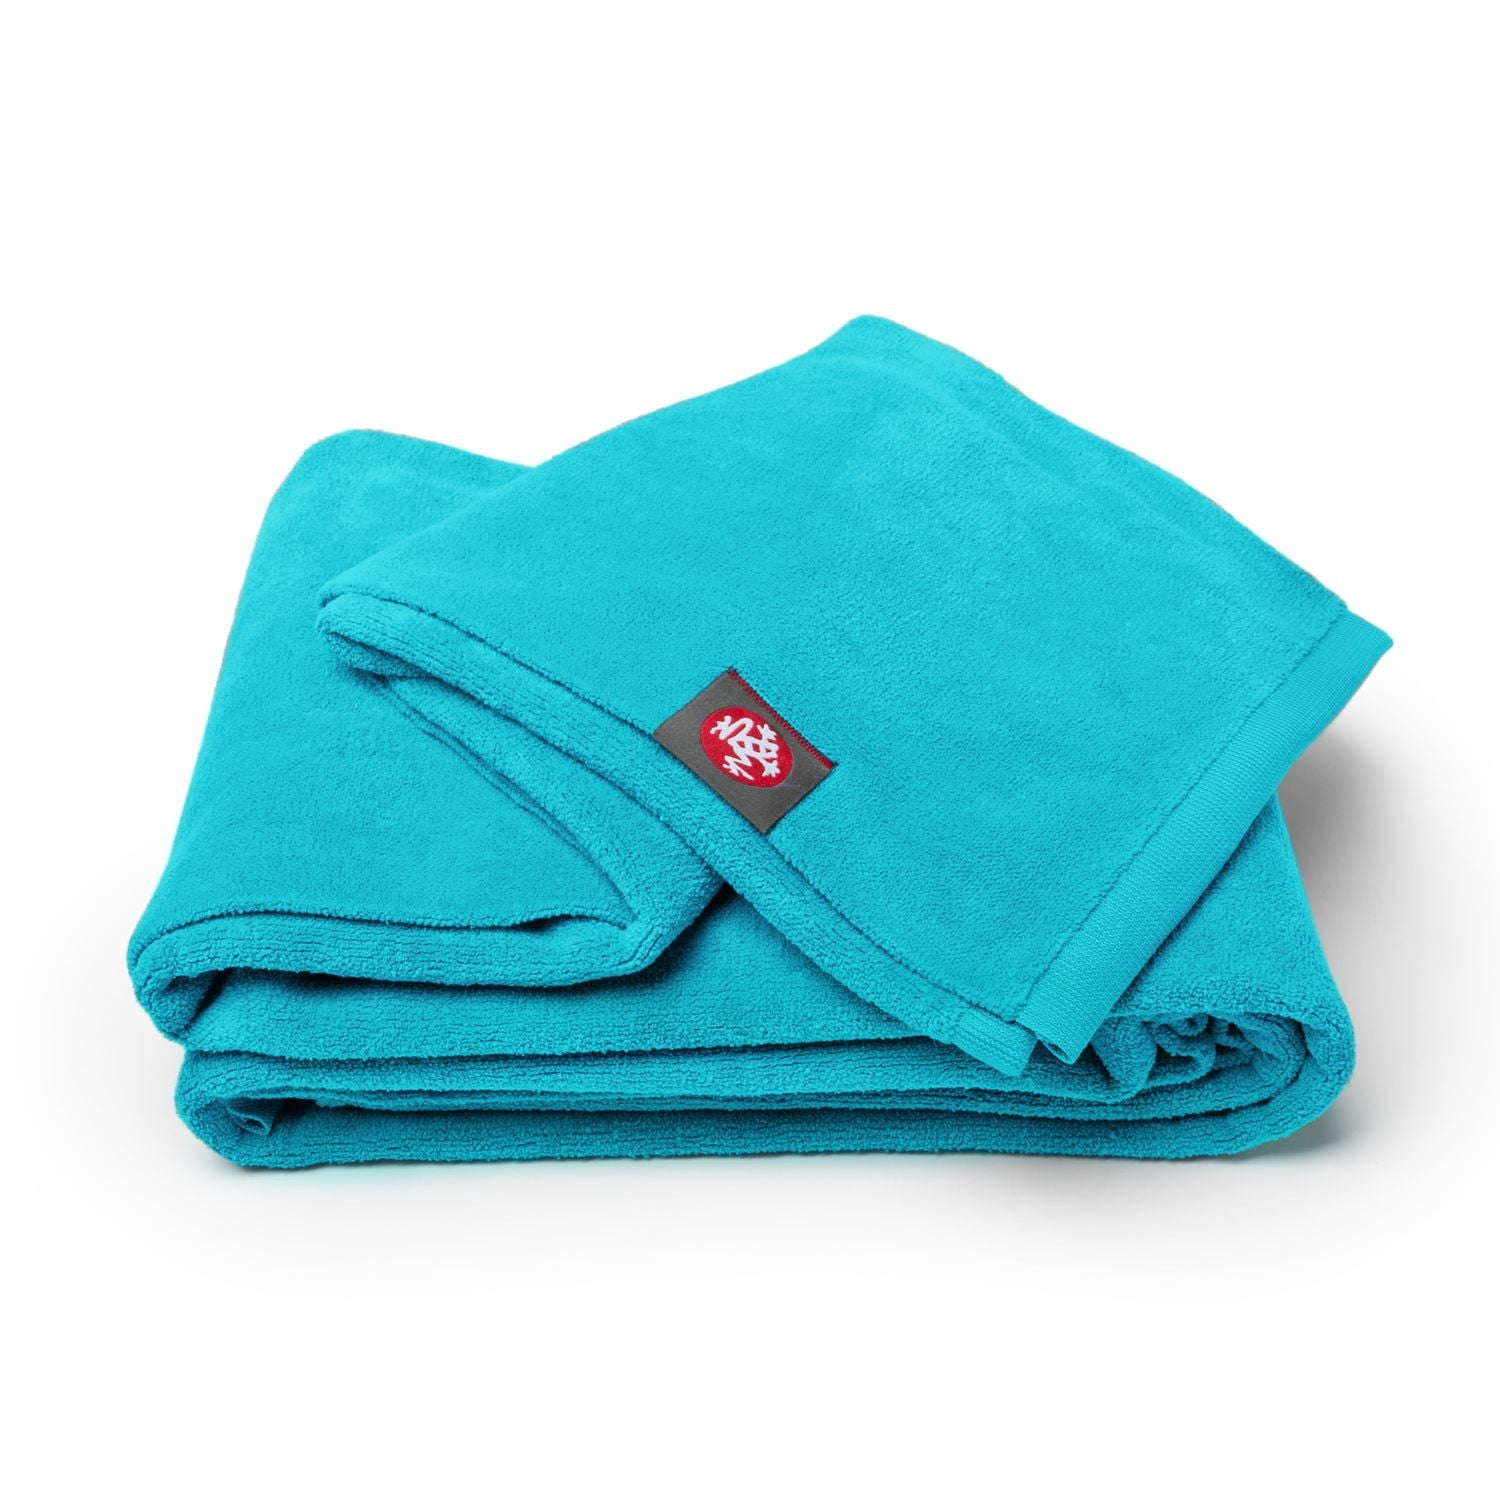 kulae yoga towel #10